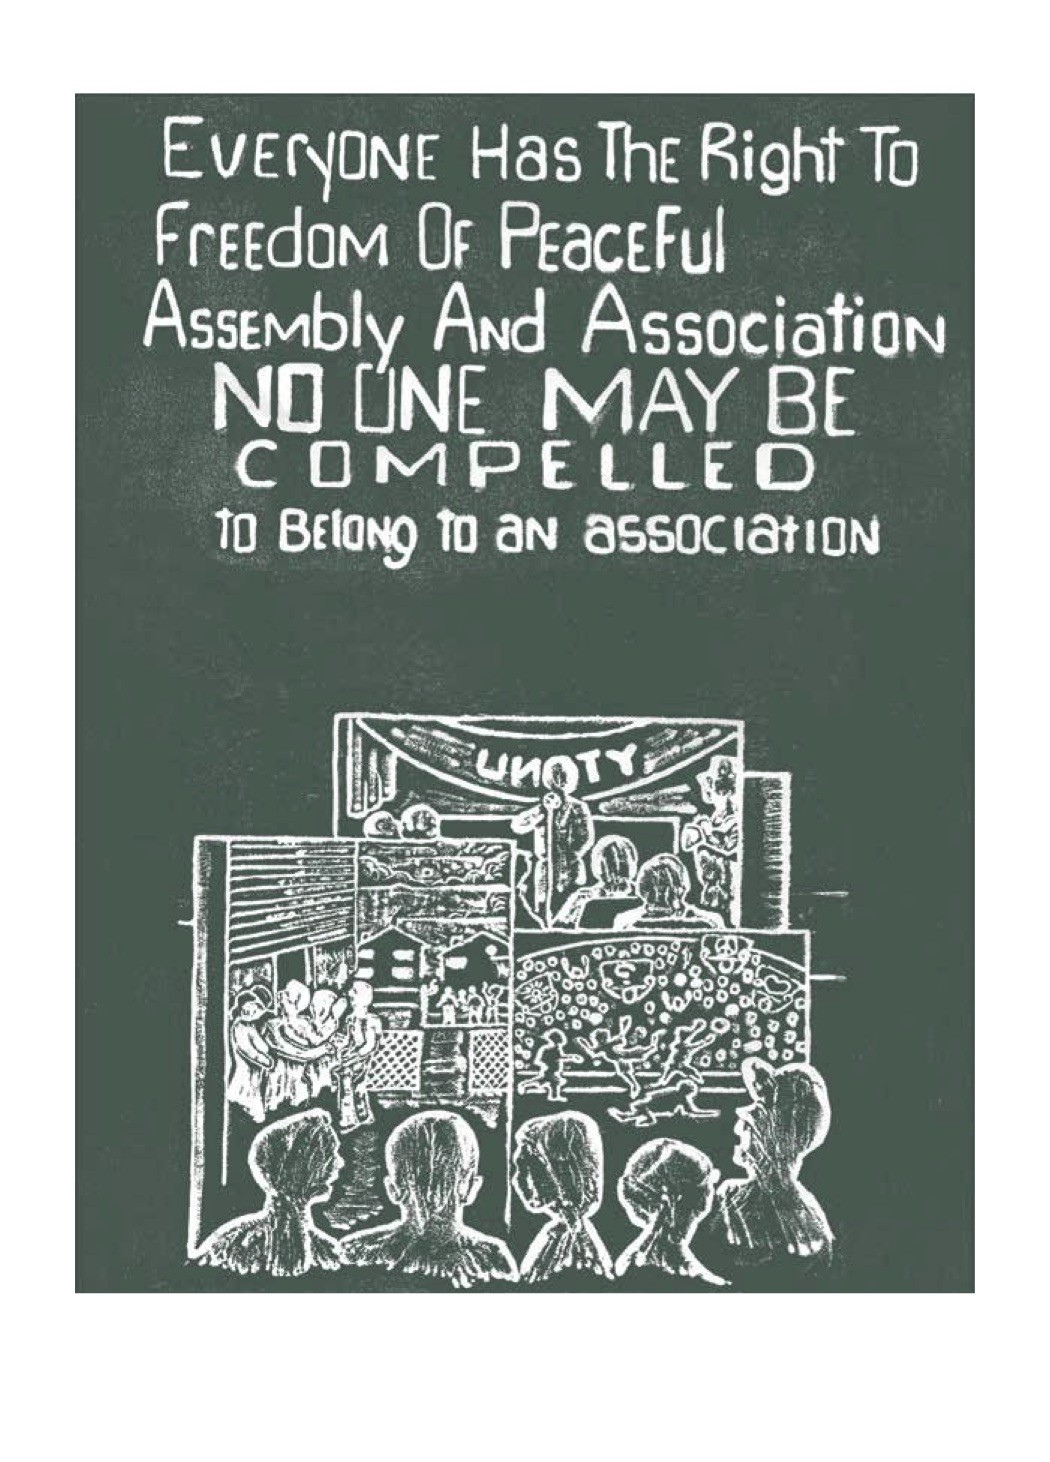 Charles McLaurin's illustration of UDHR Article 20 as seen in <i>Carving Out Rights</i>